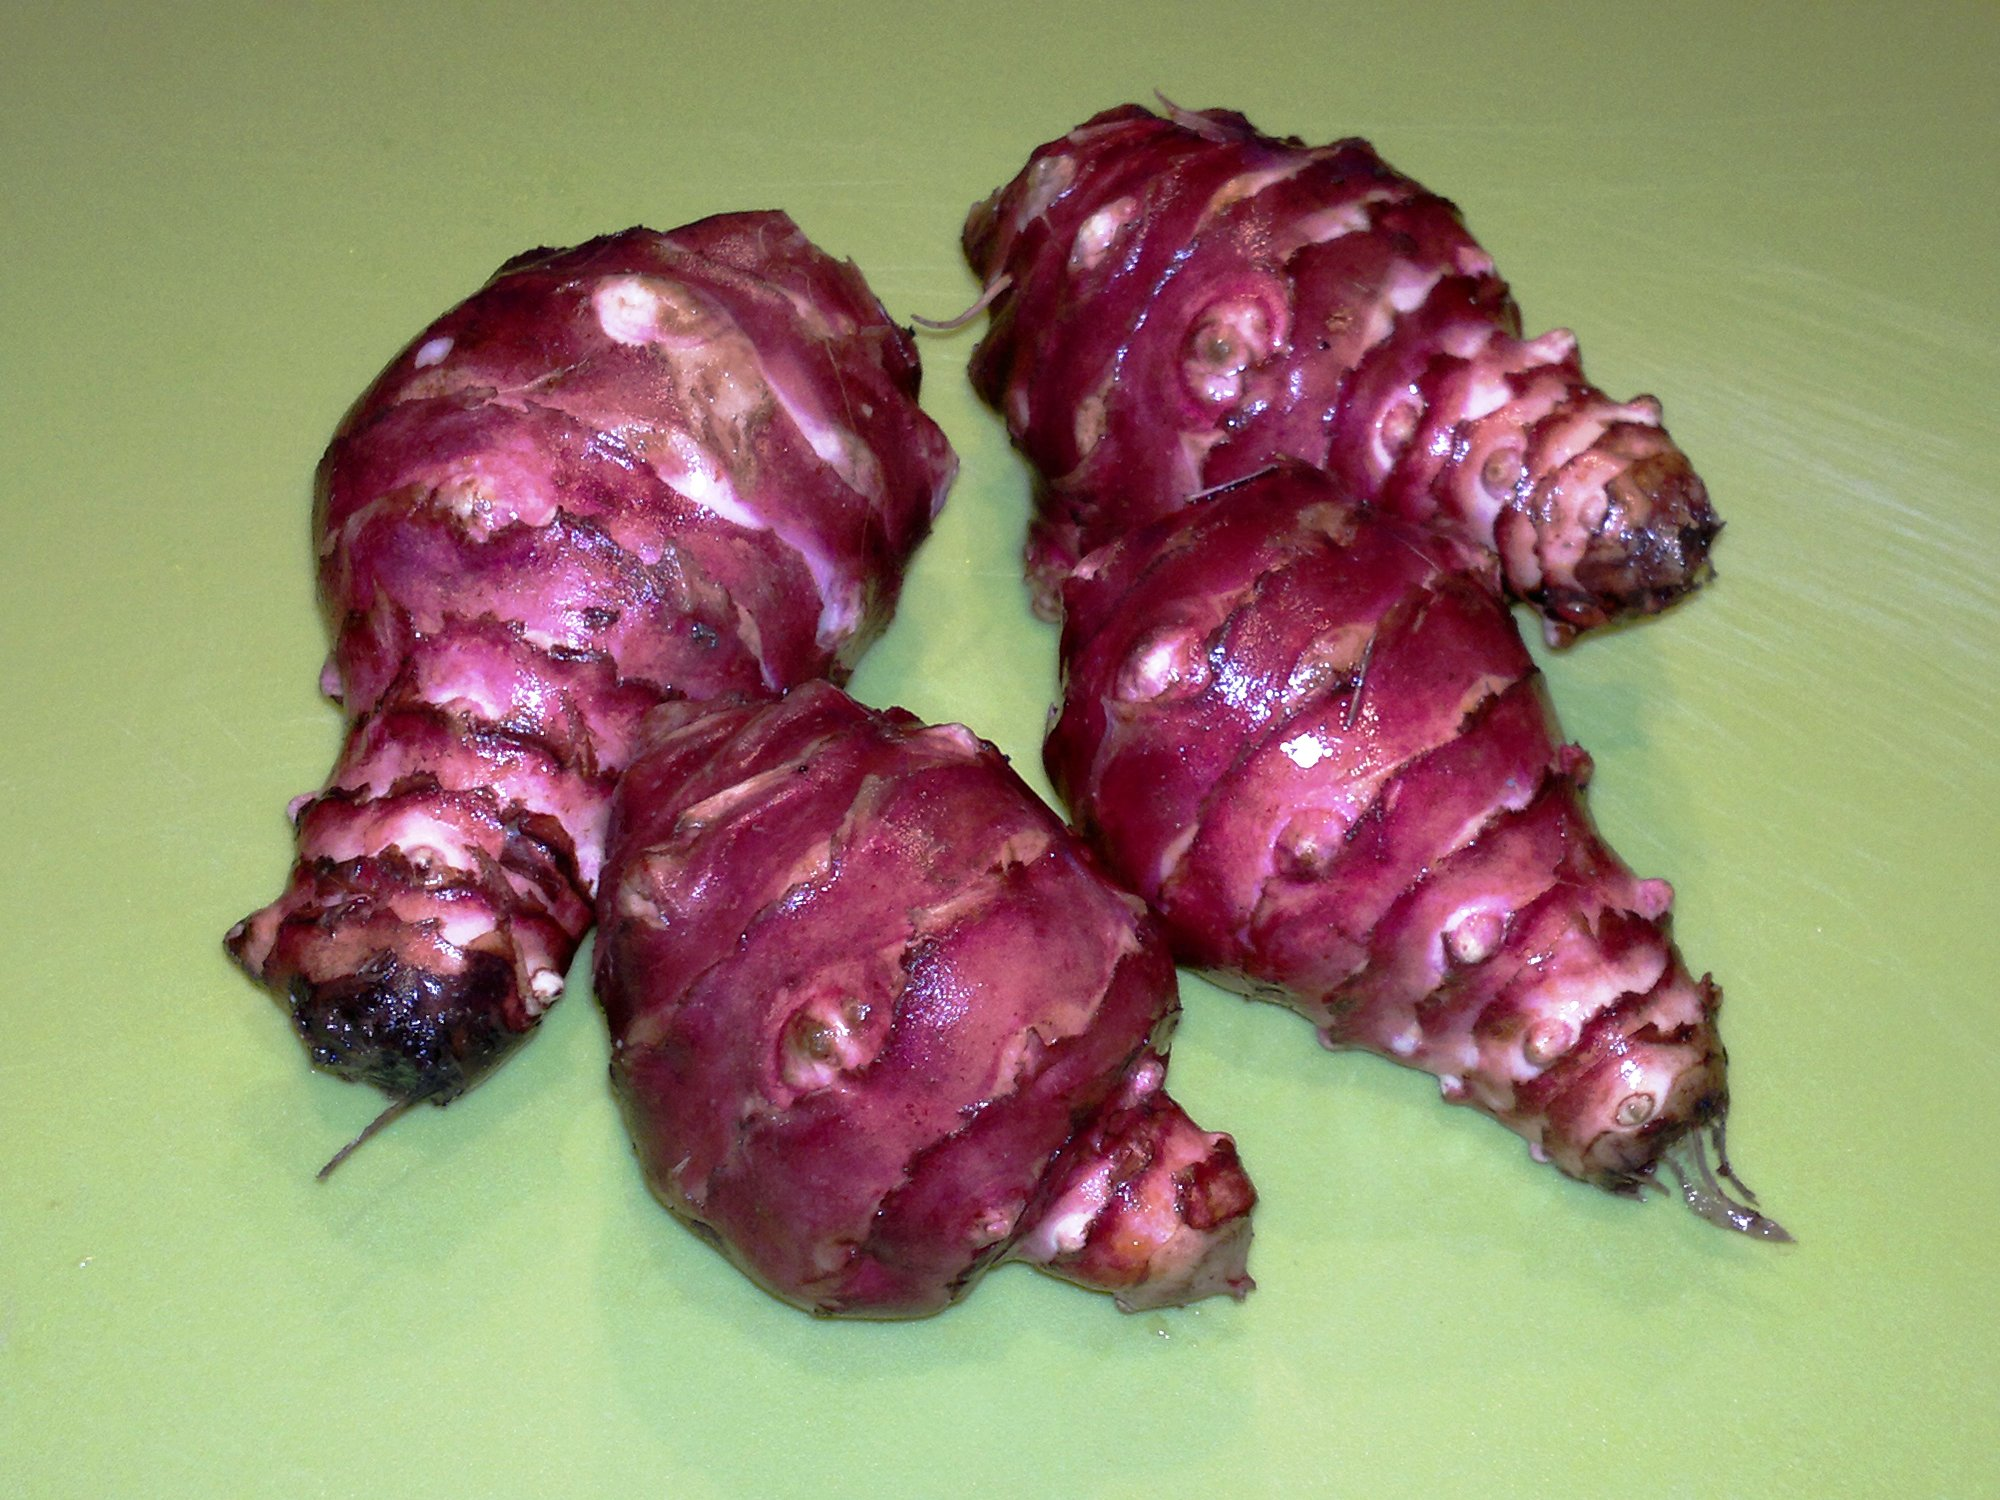 The attractive tubers of Violet de Rennes, these four were typical specimens and weighed in at 675g